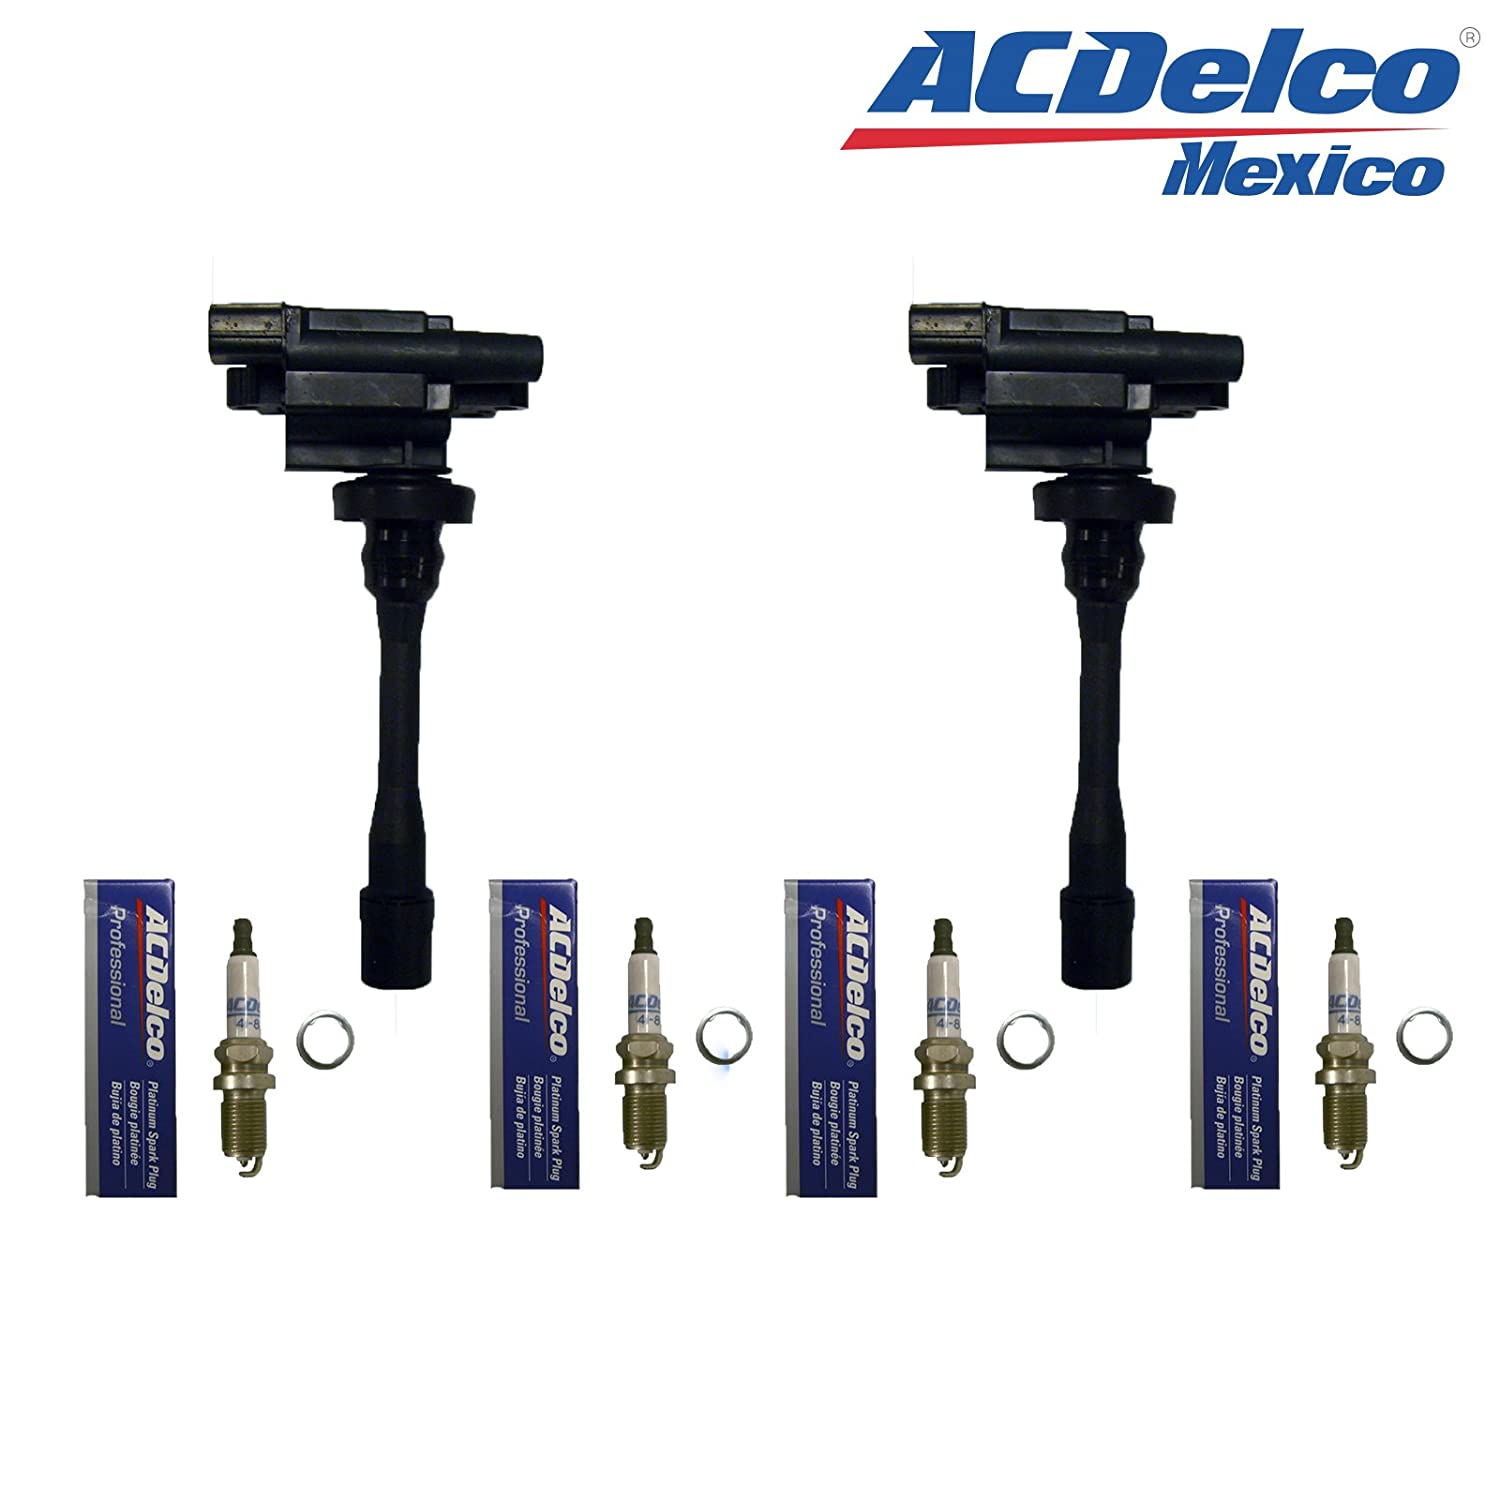 Amazon.com: 2 Richporter Ignition Coils + 4 ACDelco Spark Plugs 41-801 For 02-05 Chrysler Sebring: Automotive